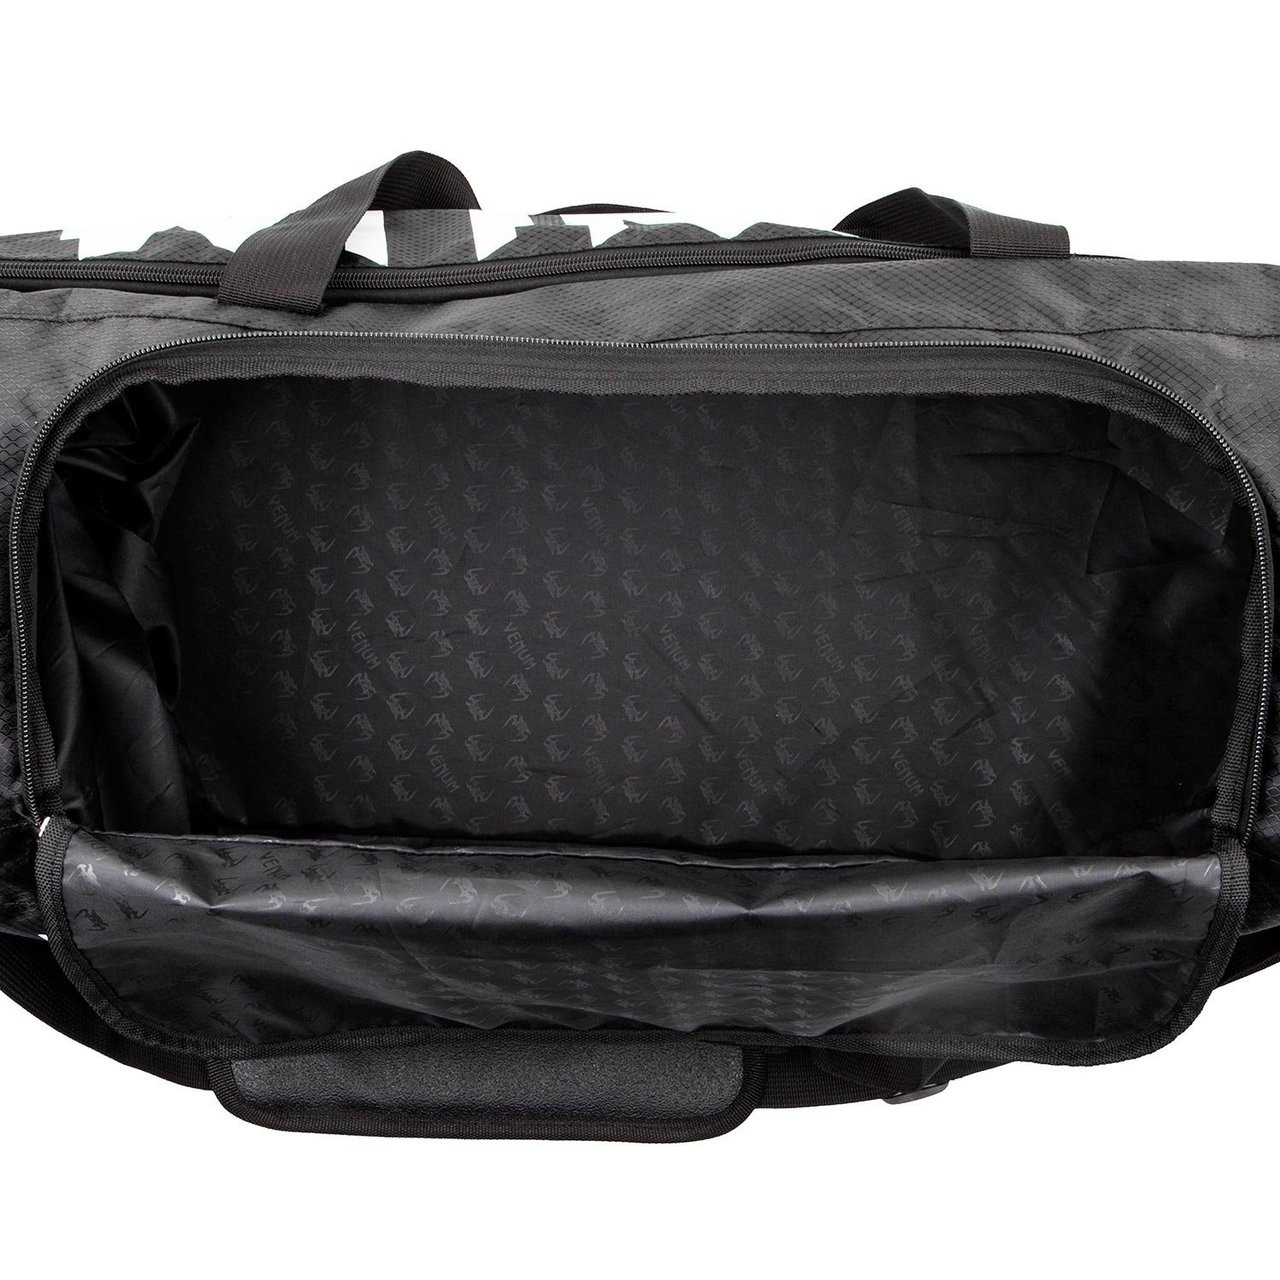 inside Venum Sparring Sports Bag  in Black on White available at www.thejiujitsushop.com  Enjoy Free Shipping from The Jiu Jitsu Shop